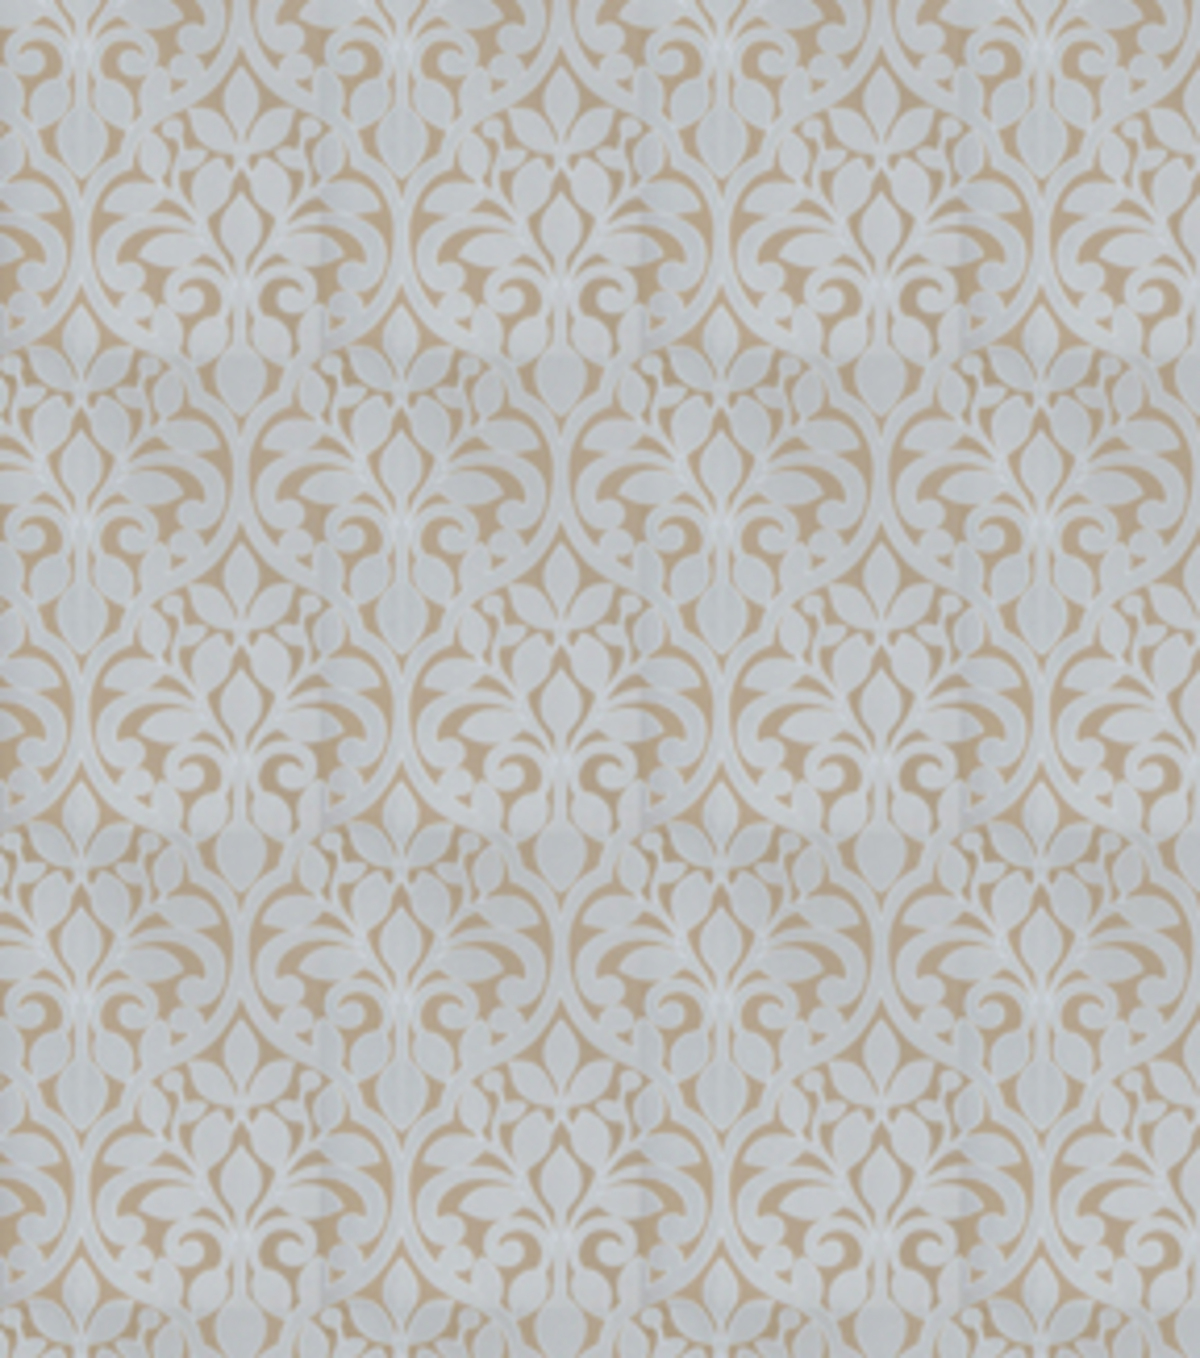 Home Decor 8\u0022x8\u0022 Fabric Swatch-Eaton Square Portabello Powder